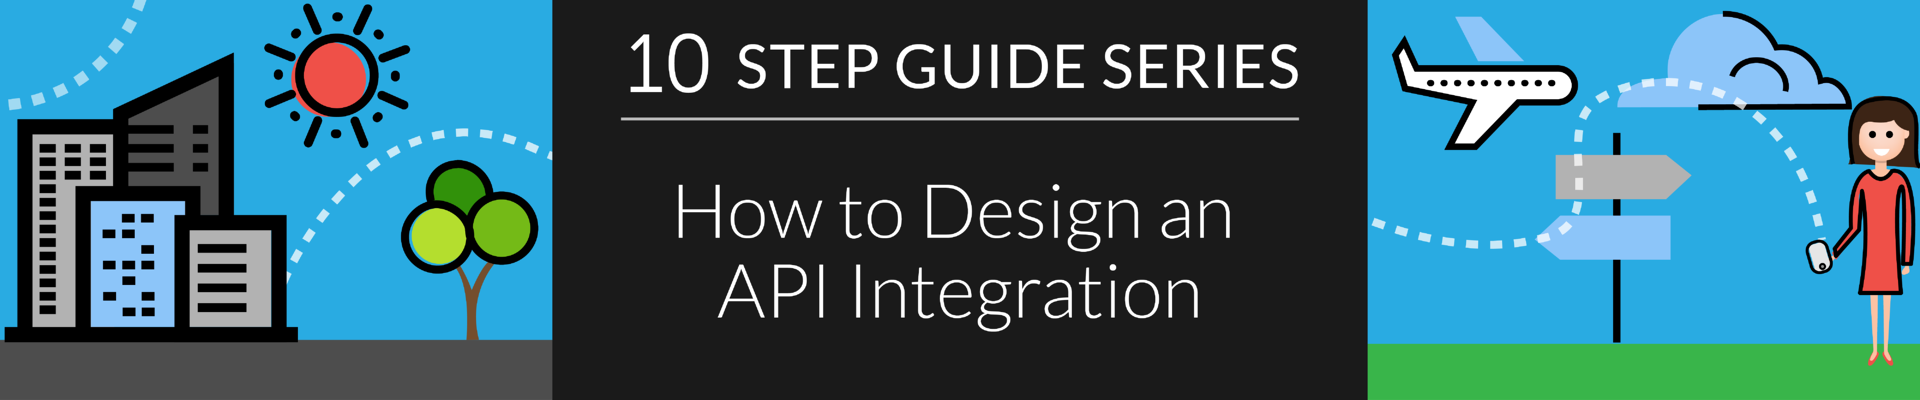 Guide to design an API Integration, reflecting a common pattern for interactive integrations